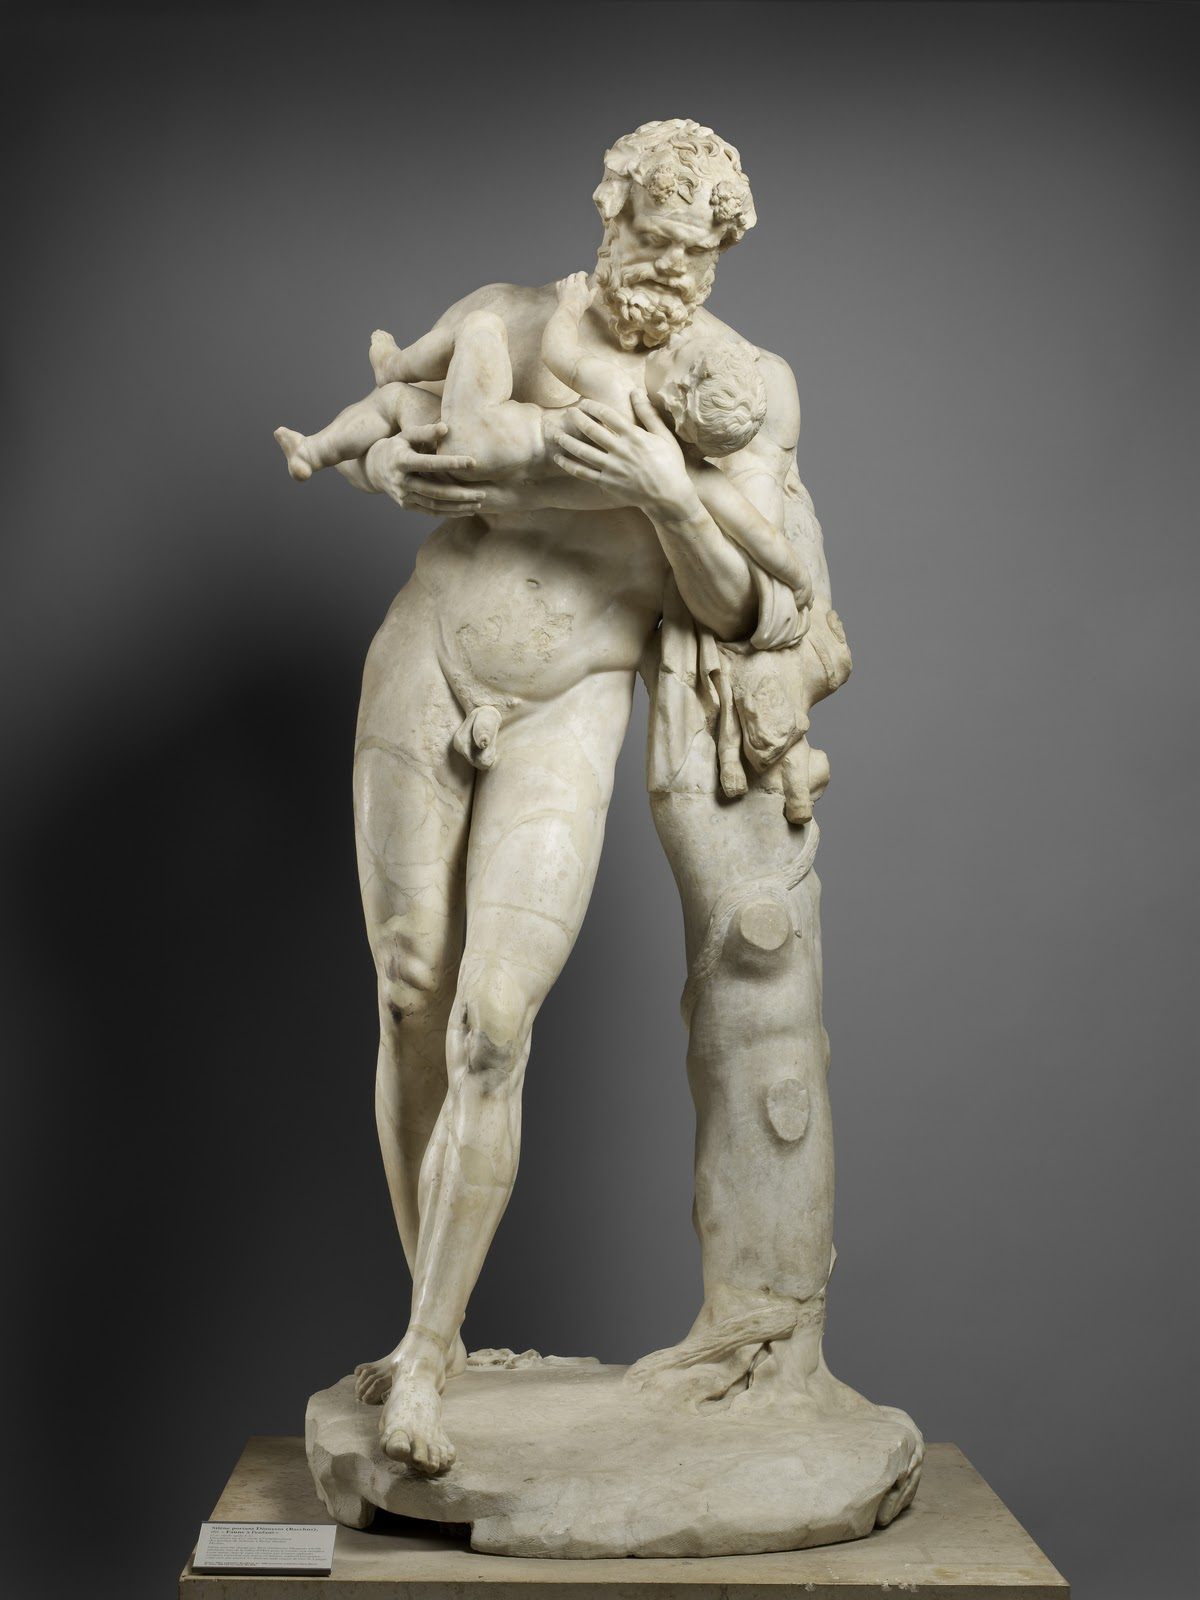 Silenus with the Child Bacchus, 1st-2nd cent. AD copy of4th cent. BC original by Lysippus, Louvre Museum, Paris. © Musée du Louvre, Thierry Ollivier